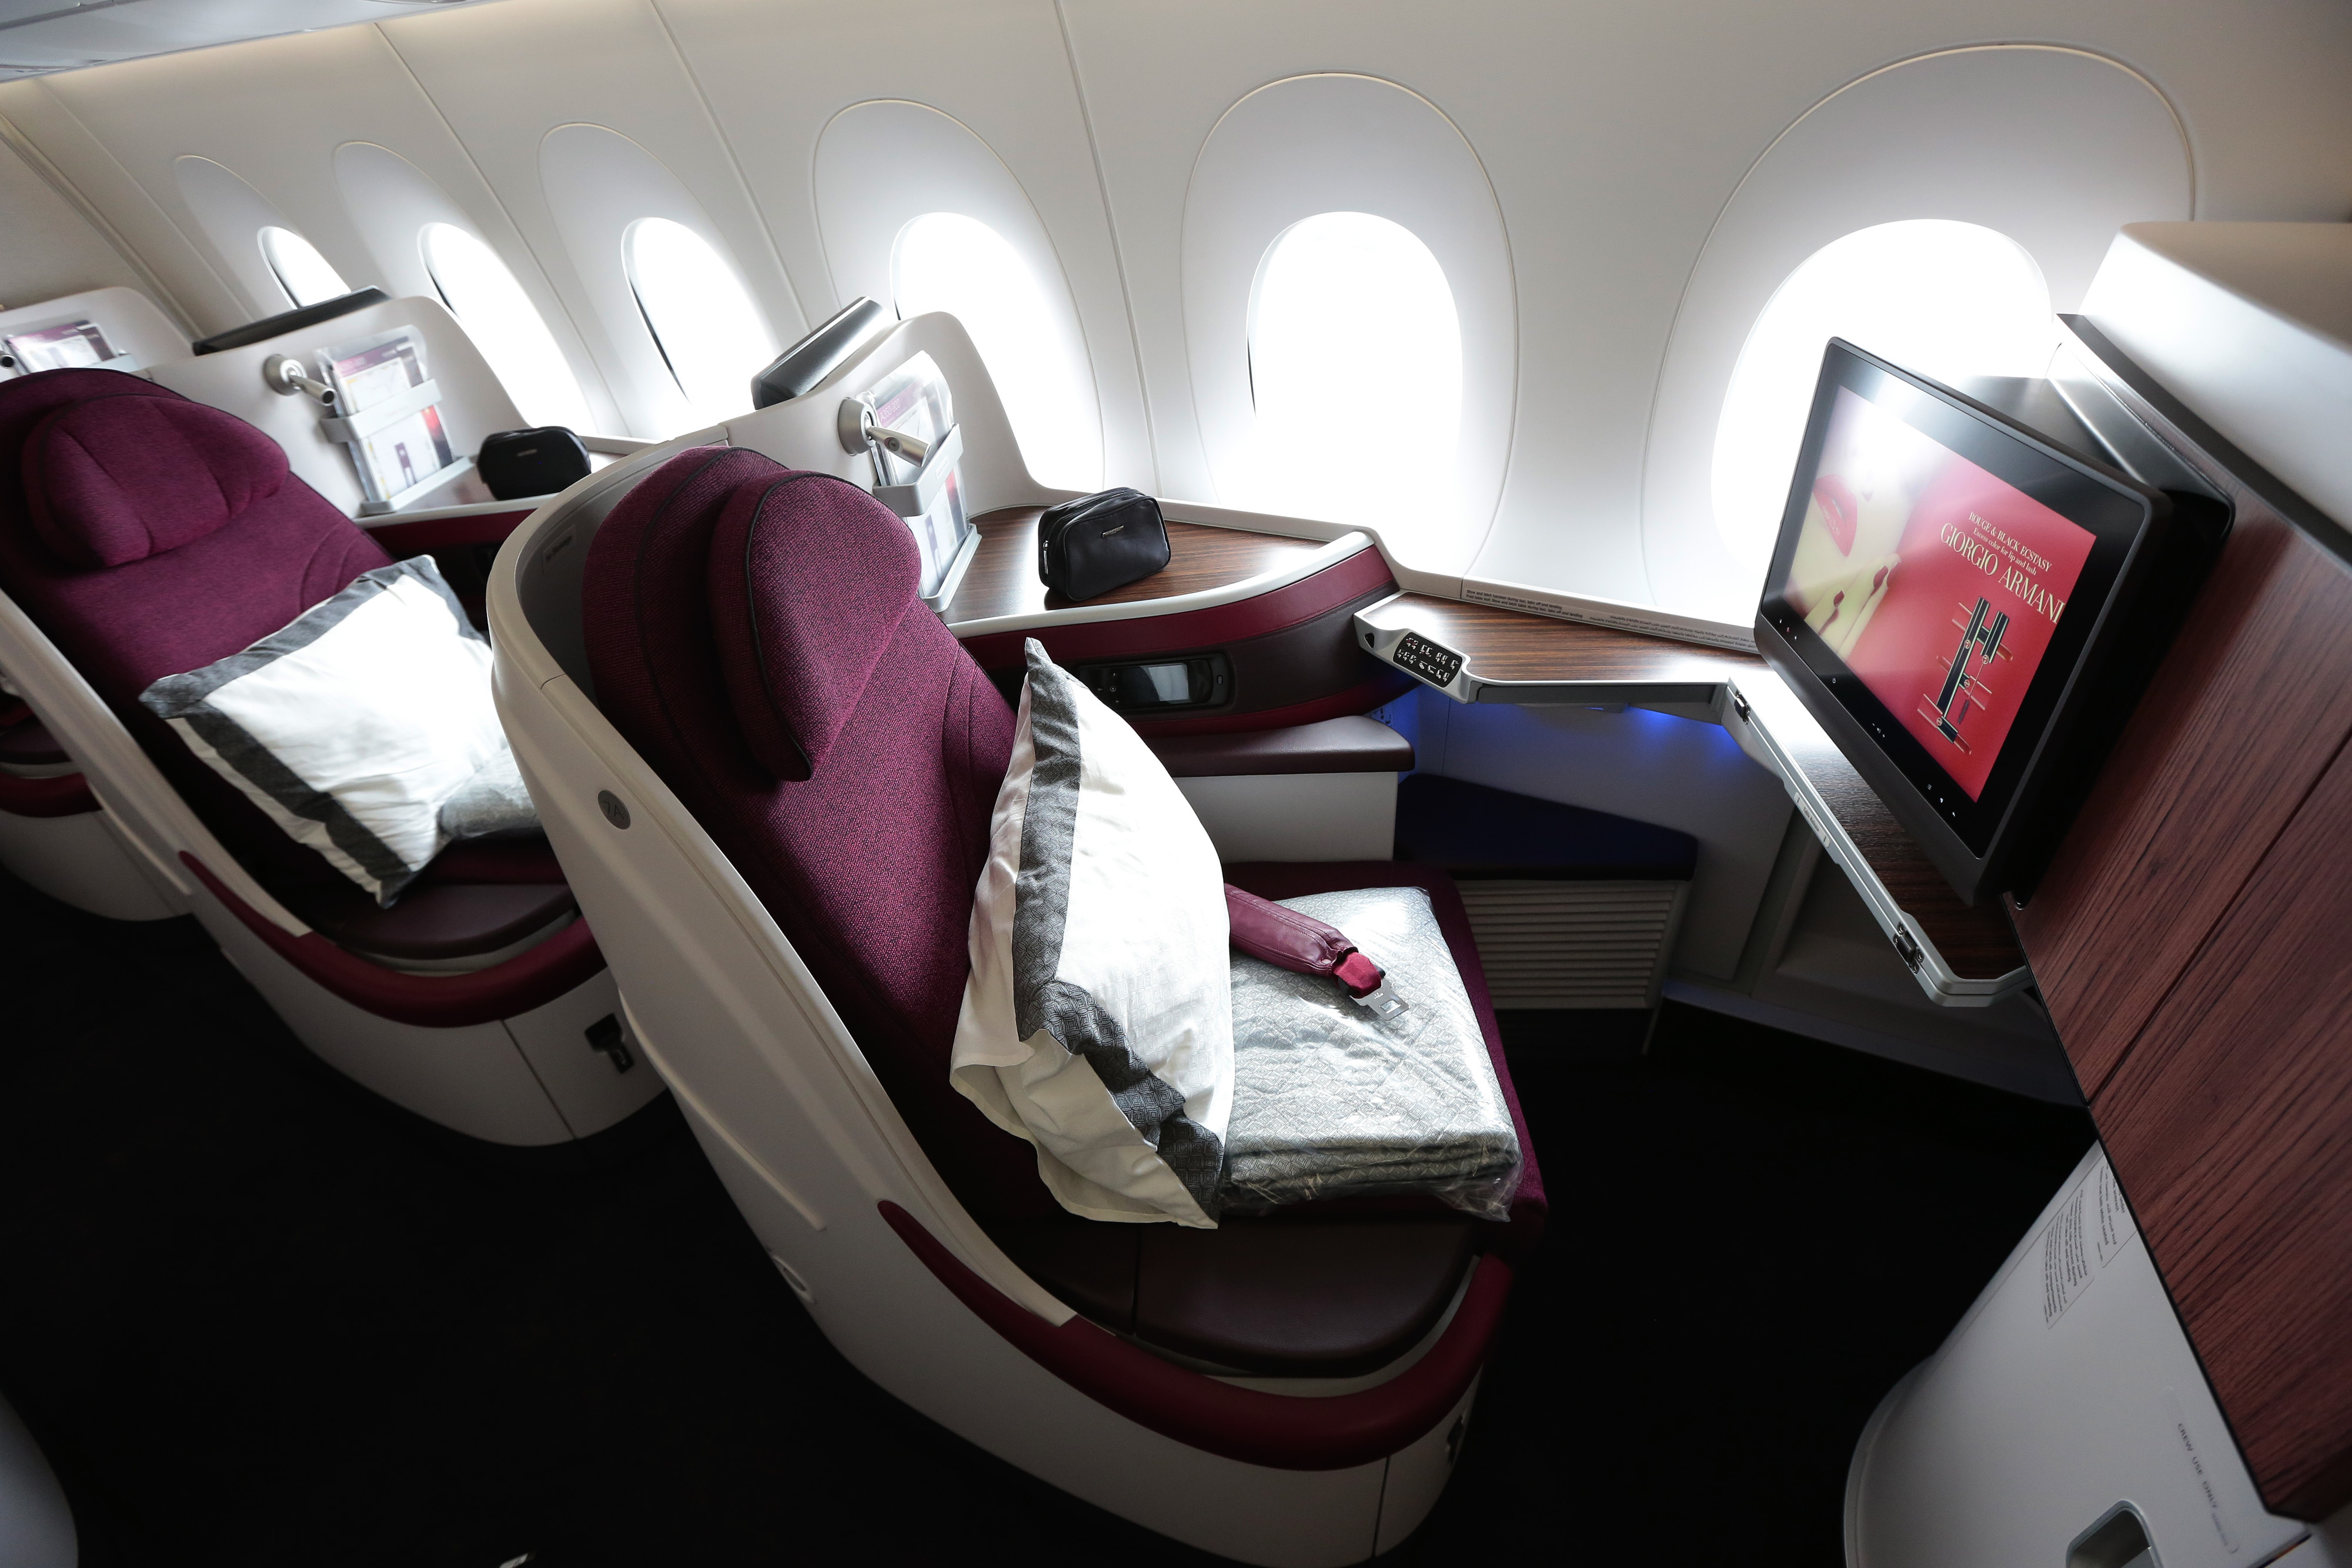 First class cabin booths sit aboard an Airbus SAS A380 aircraft, operated by Qatar Airways Ltd., on the opening day of the 51st International Paris Air Show in Paris, France, on Monday, June 15, 2015.